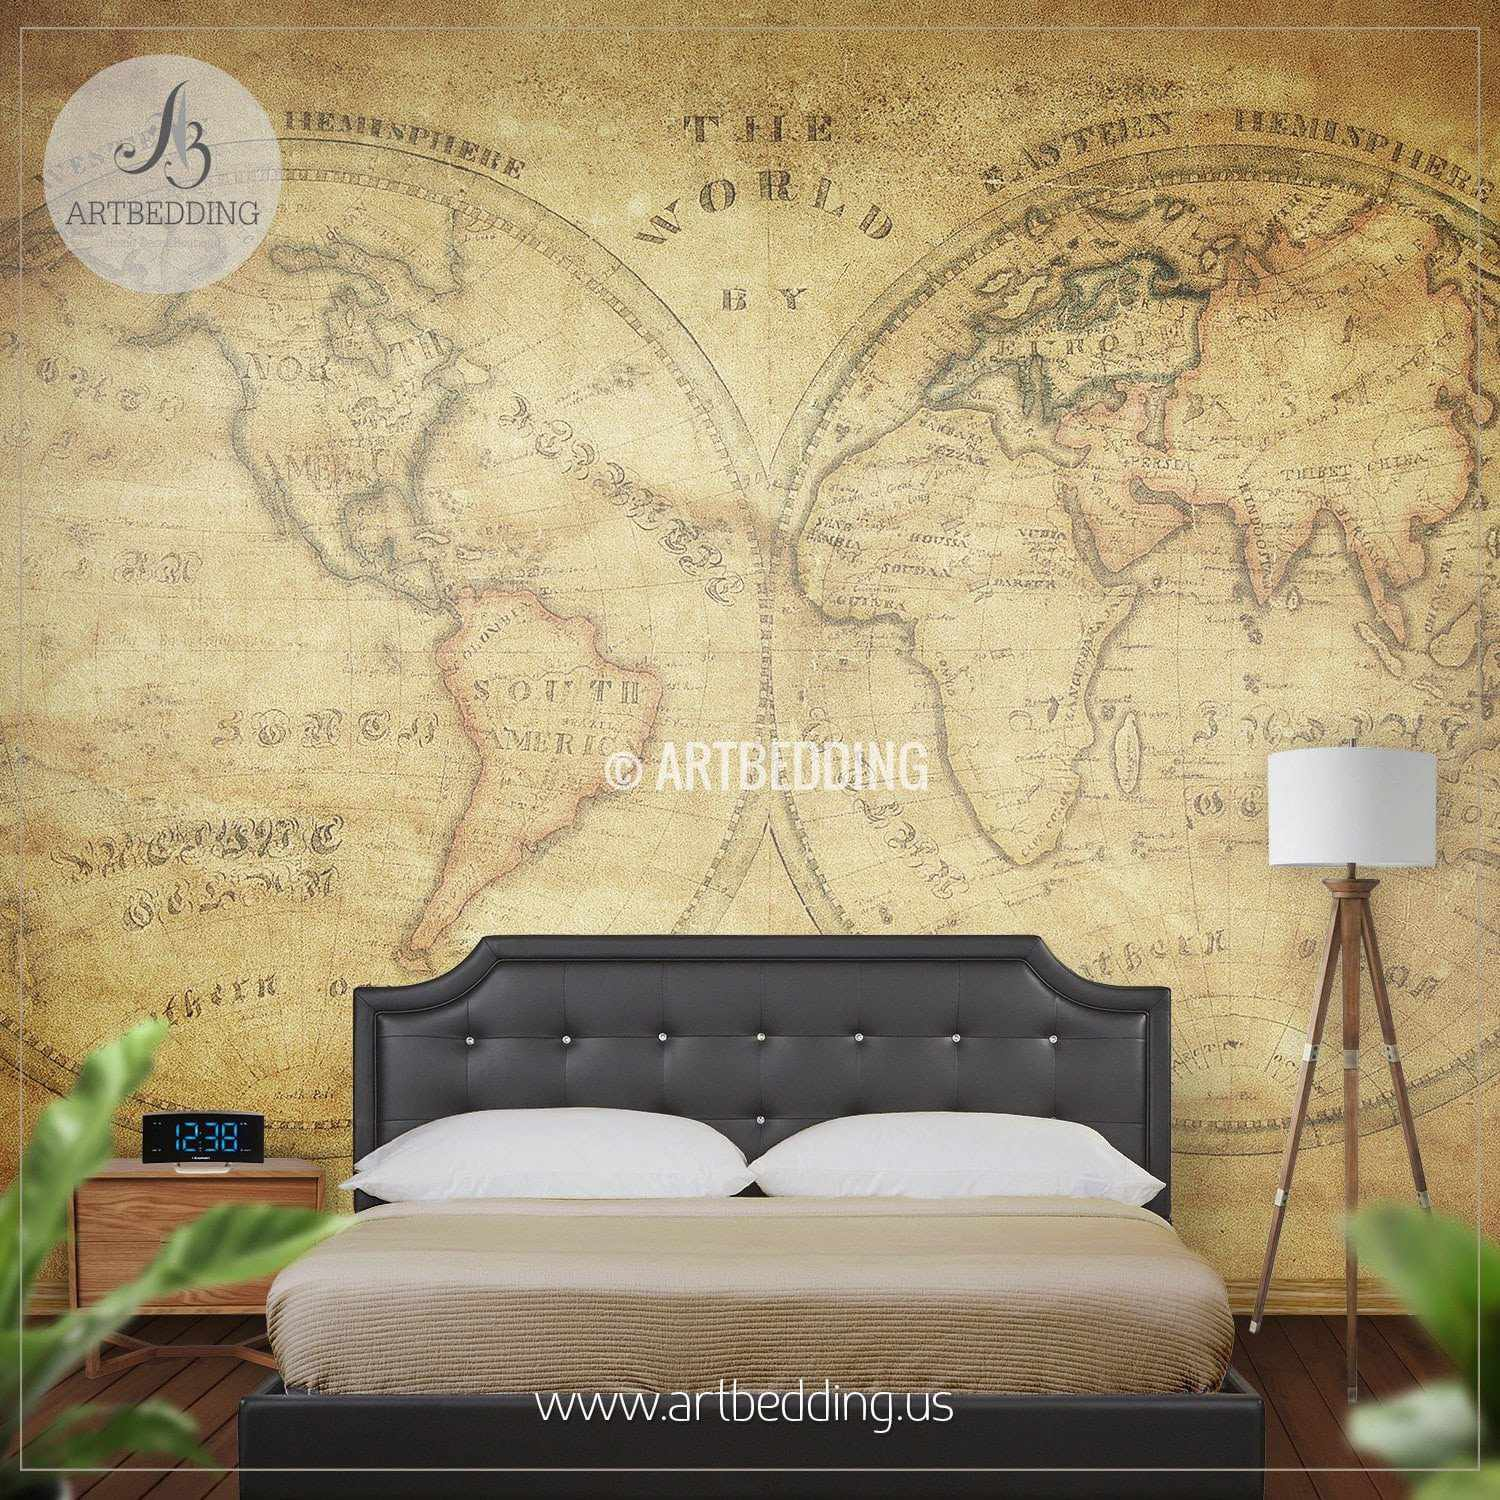 Vintage map wall mural self adhesive photo mural artbedding home vintage world map from 1833 wall mural self adhesive peel stick photo mural gumiabroncs Choice Image